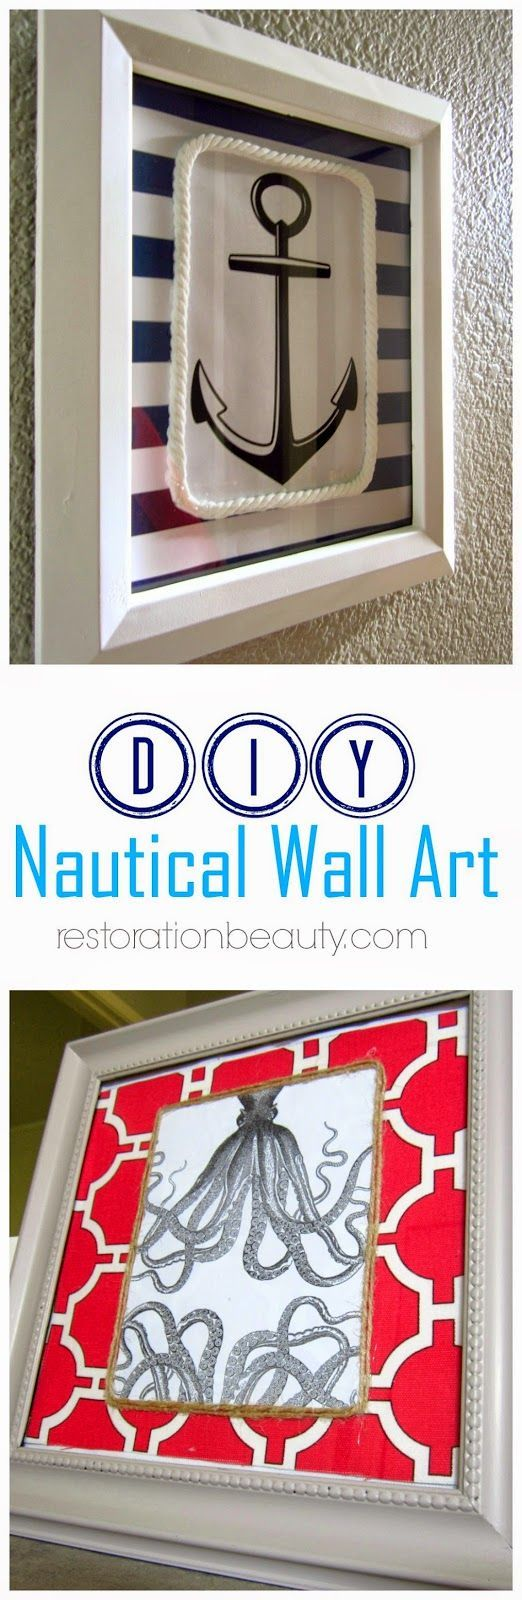 DIY Nautical Wall art that is easy and quick to make!  Restoration Beauty